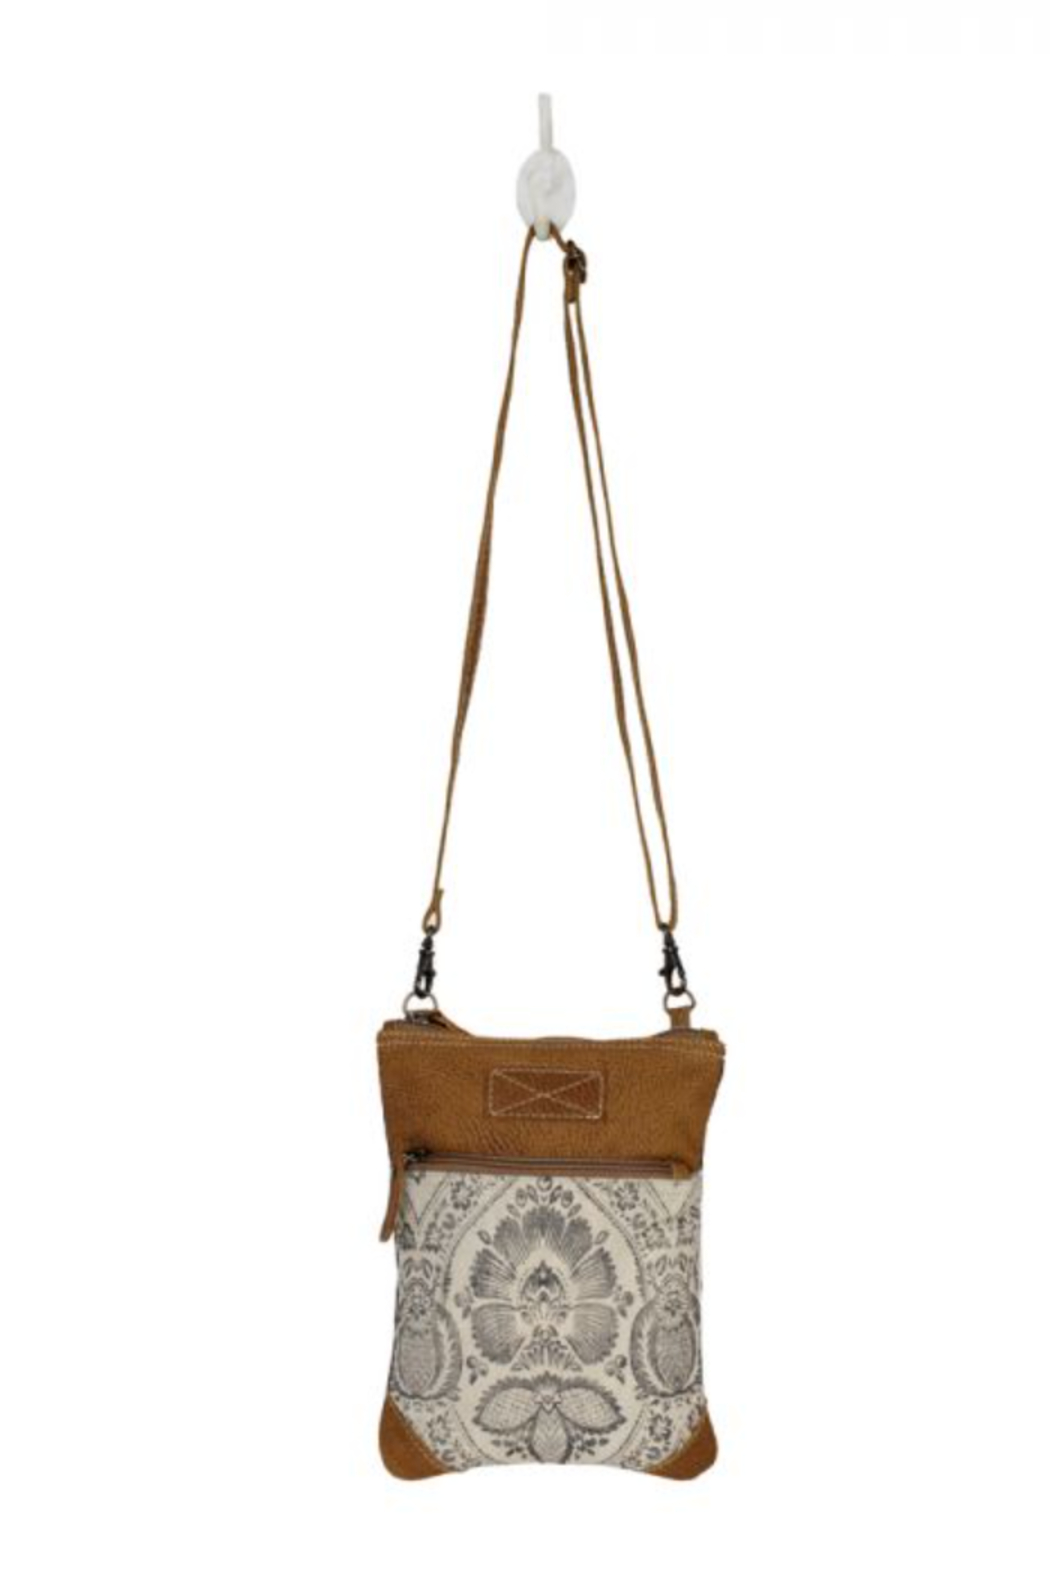 MarkWEST-Myra Bag Soul Searcher Small & Cross Body Bag - Main Image